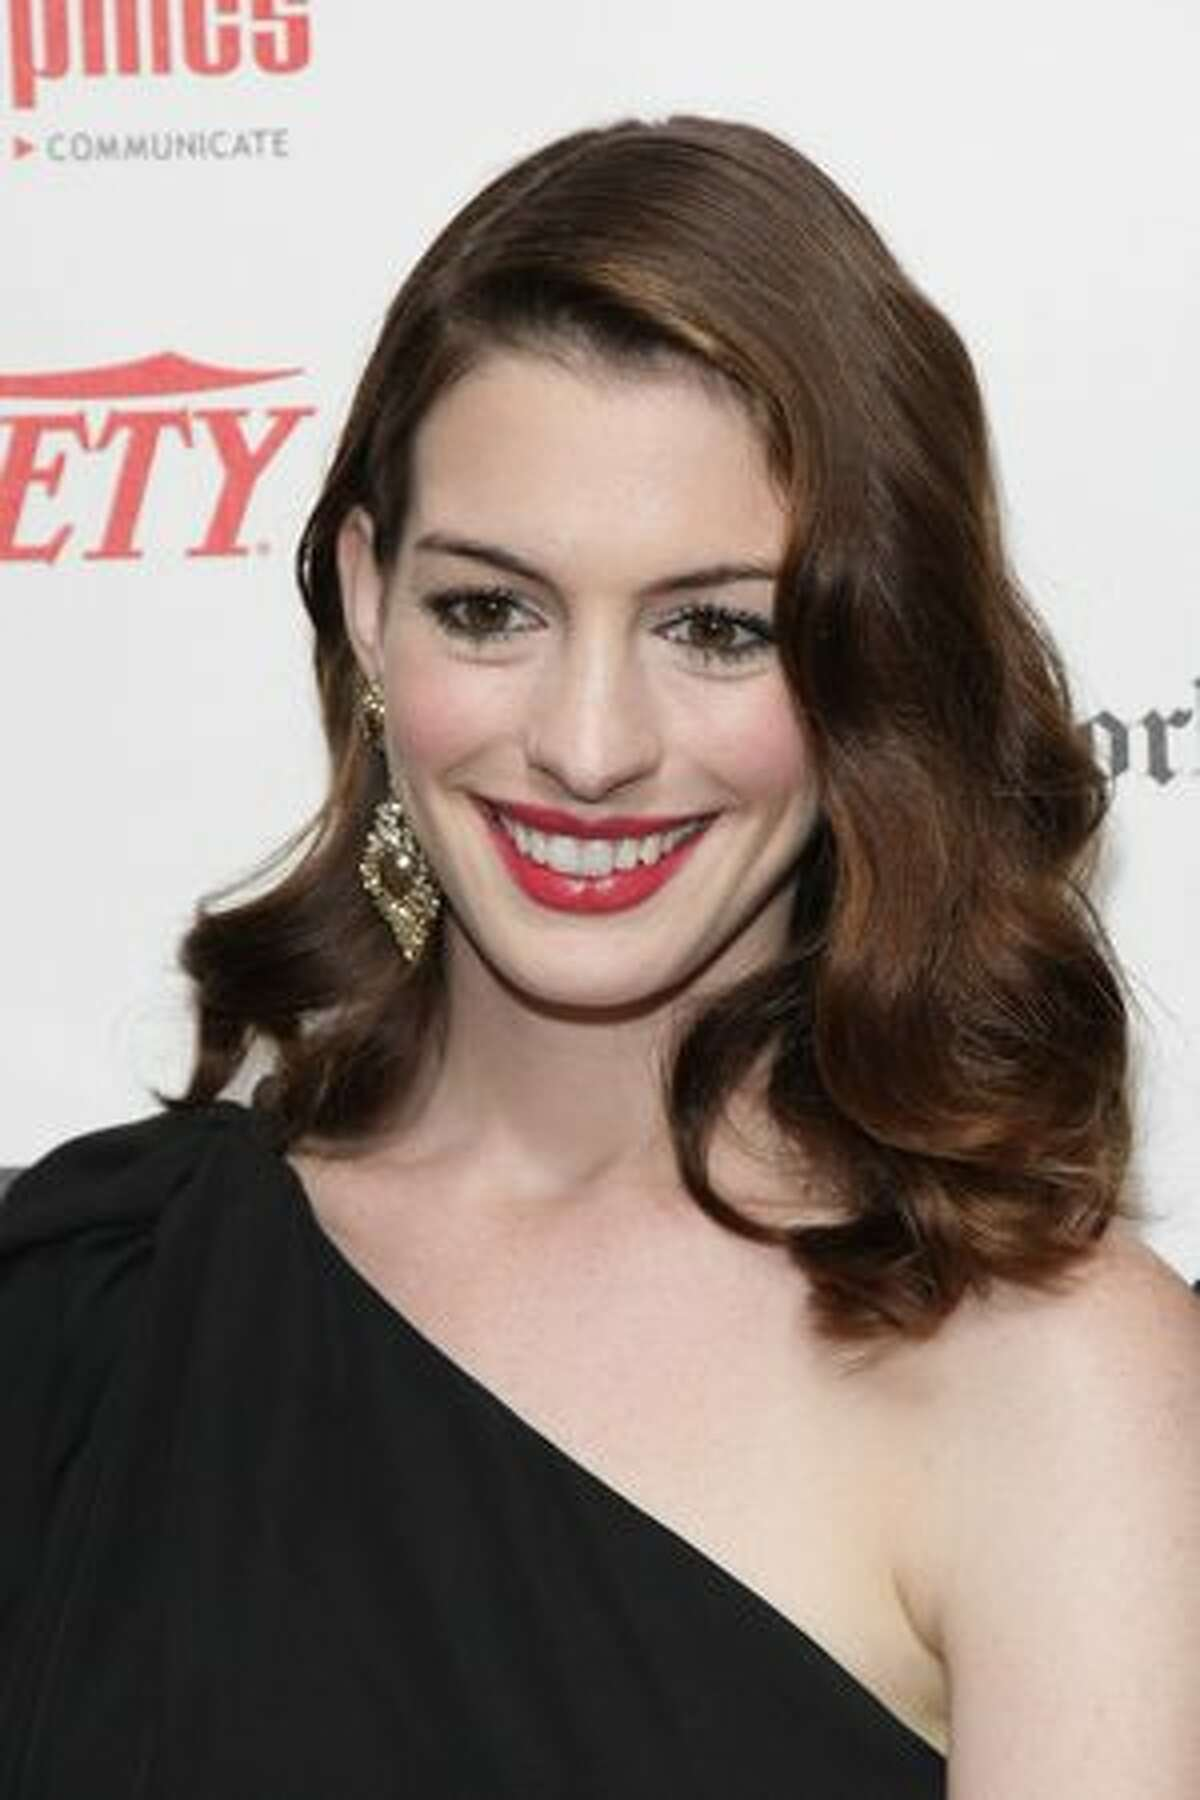 Actress Anne Hathaway arrives at the 55th Annual Drama Desk Awards at FH LaGuardia Concert Hall at Lincoln Center.